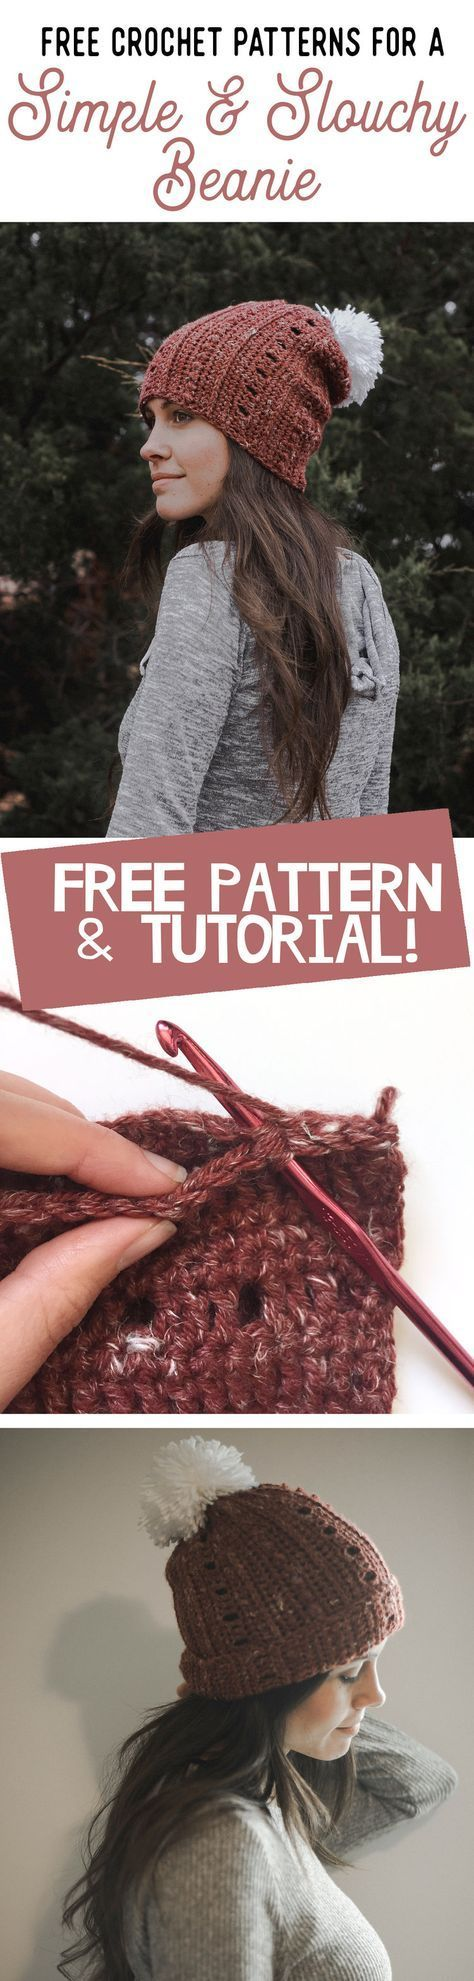 Free Crochet Pattern for a Super Simple & Slouchy Beanie | Aaa ...